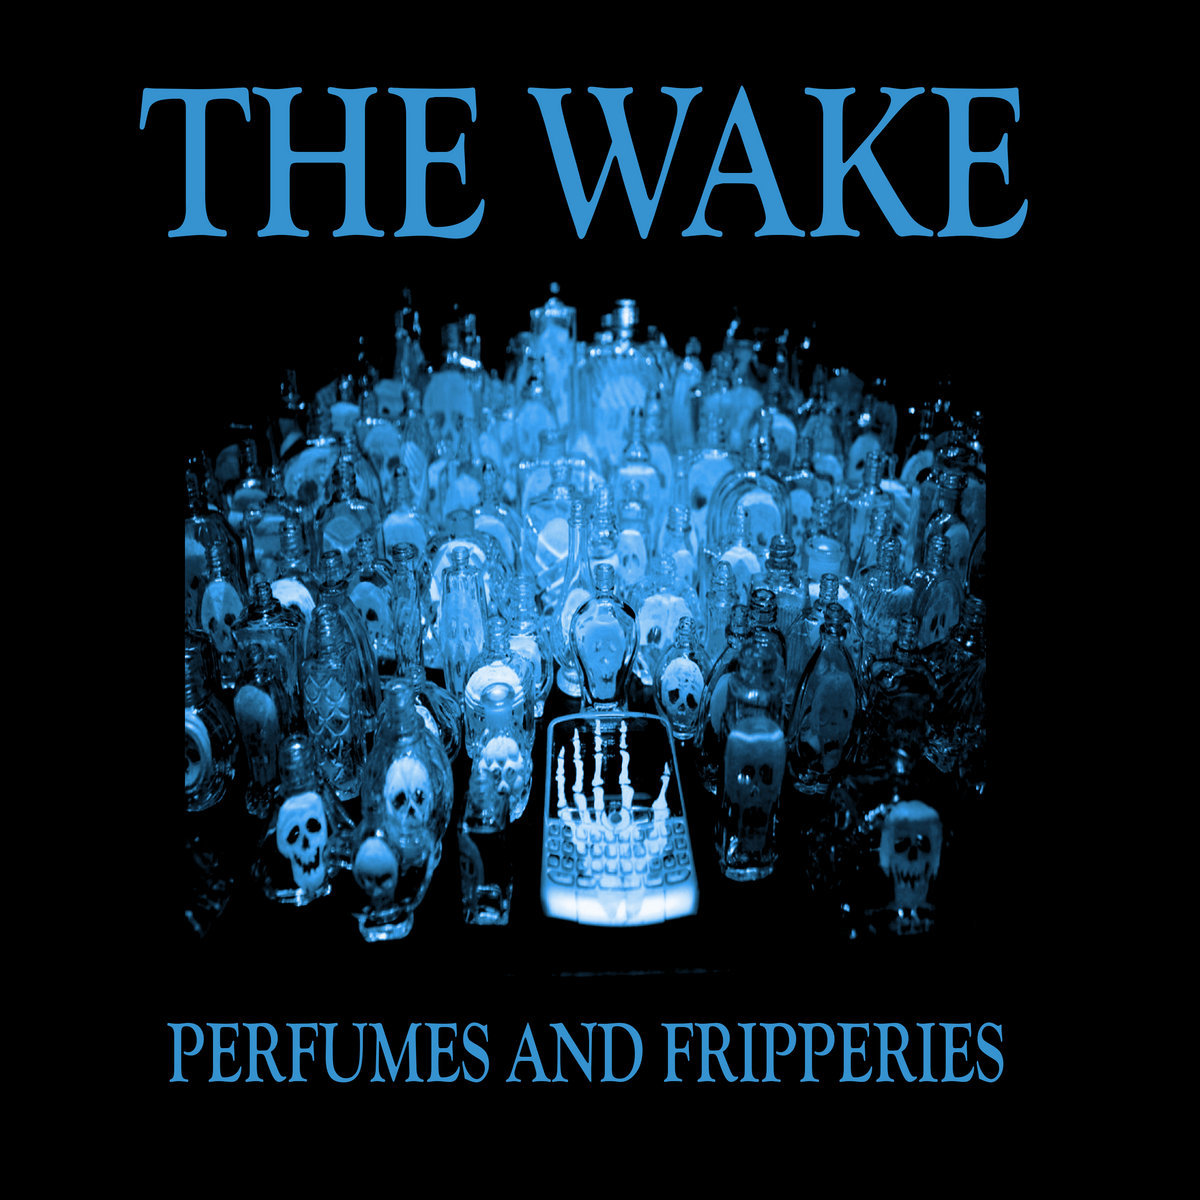 The Wake, 'Perfumes and Fripperies'